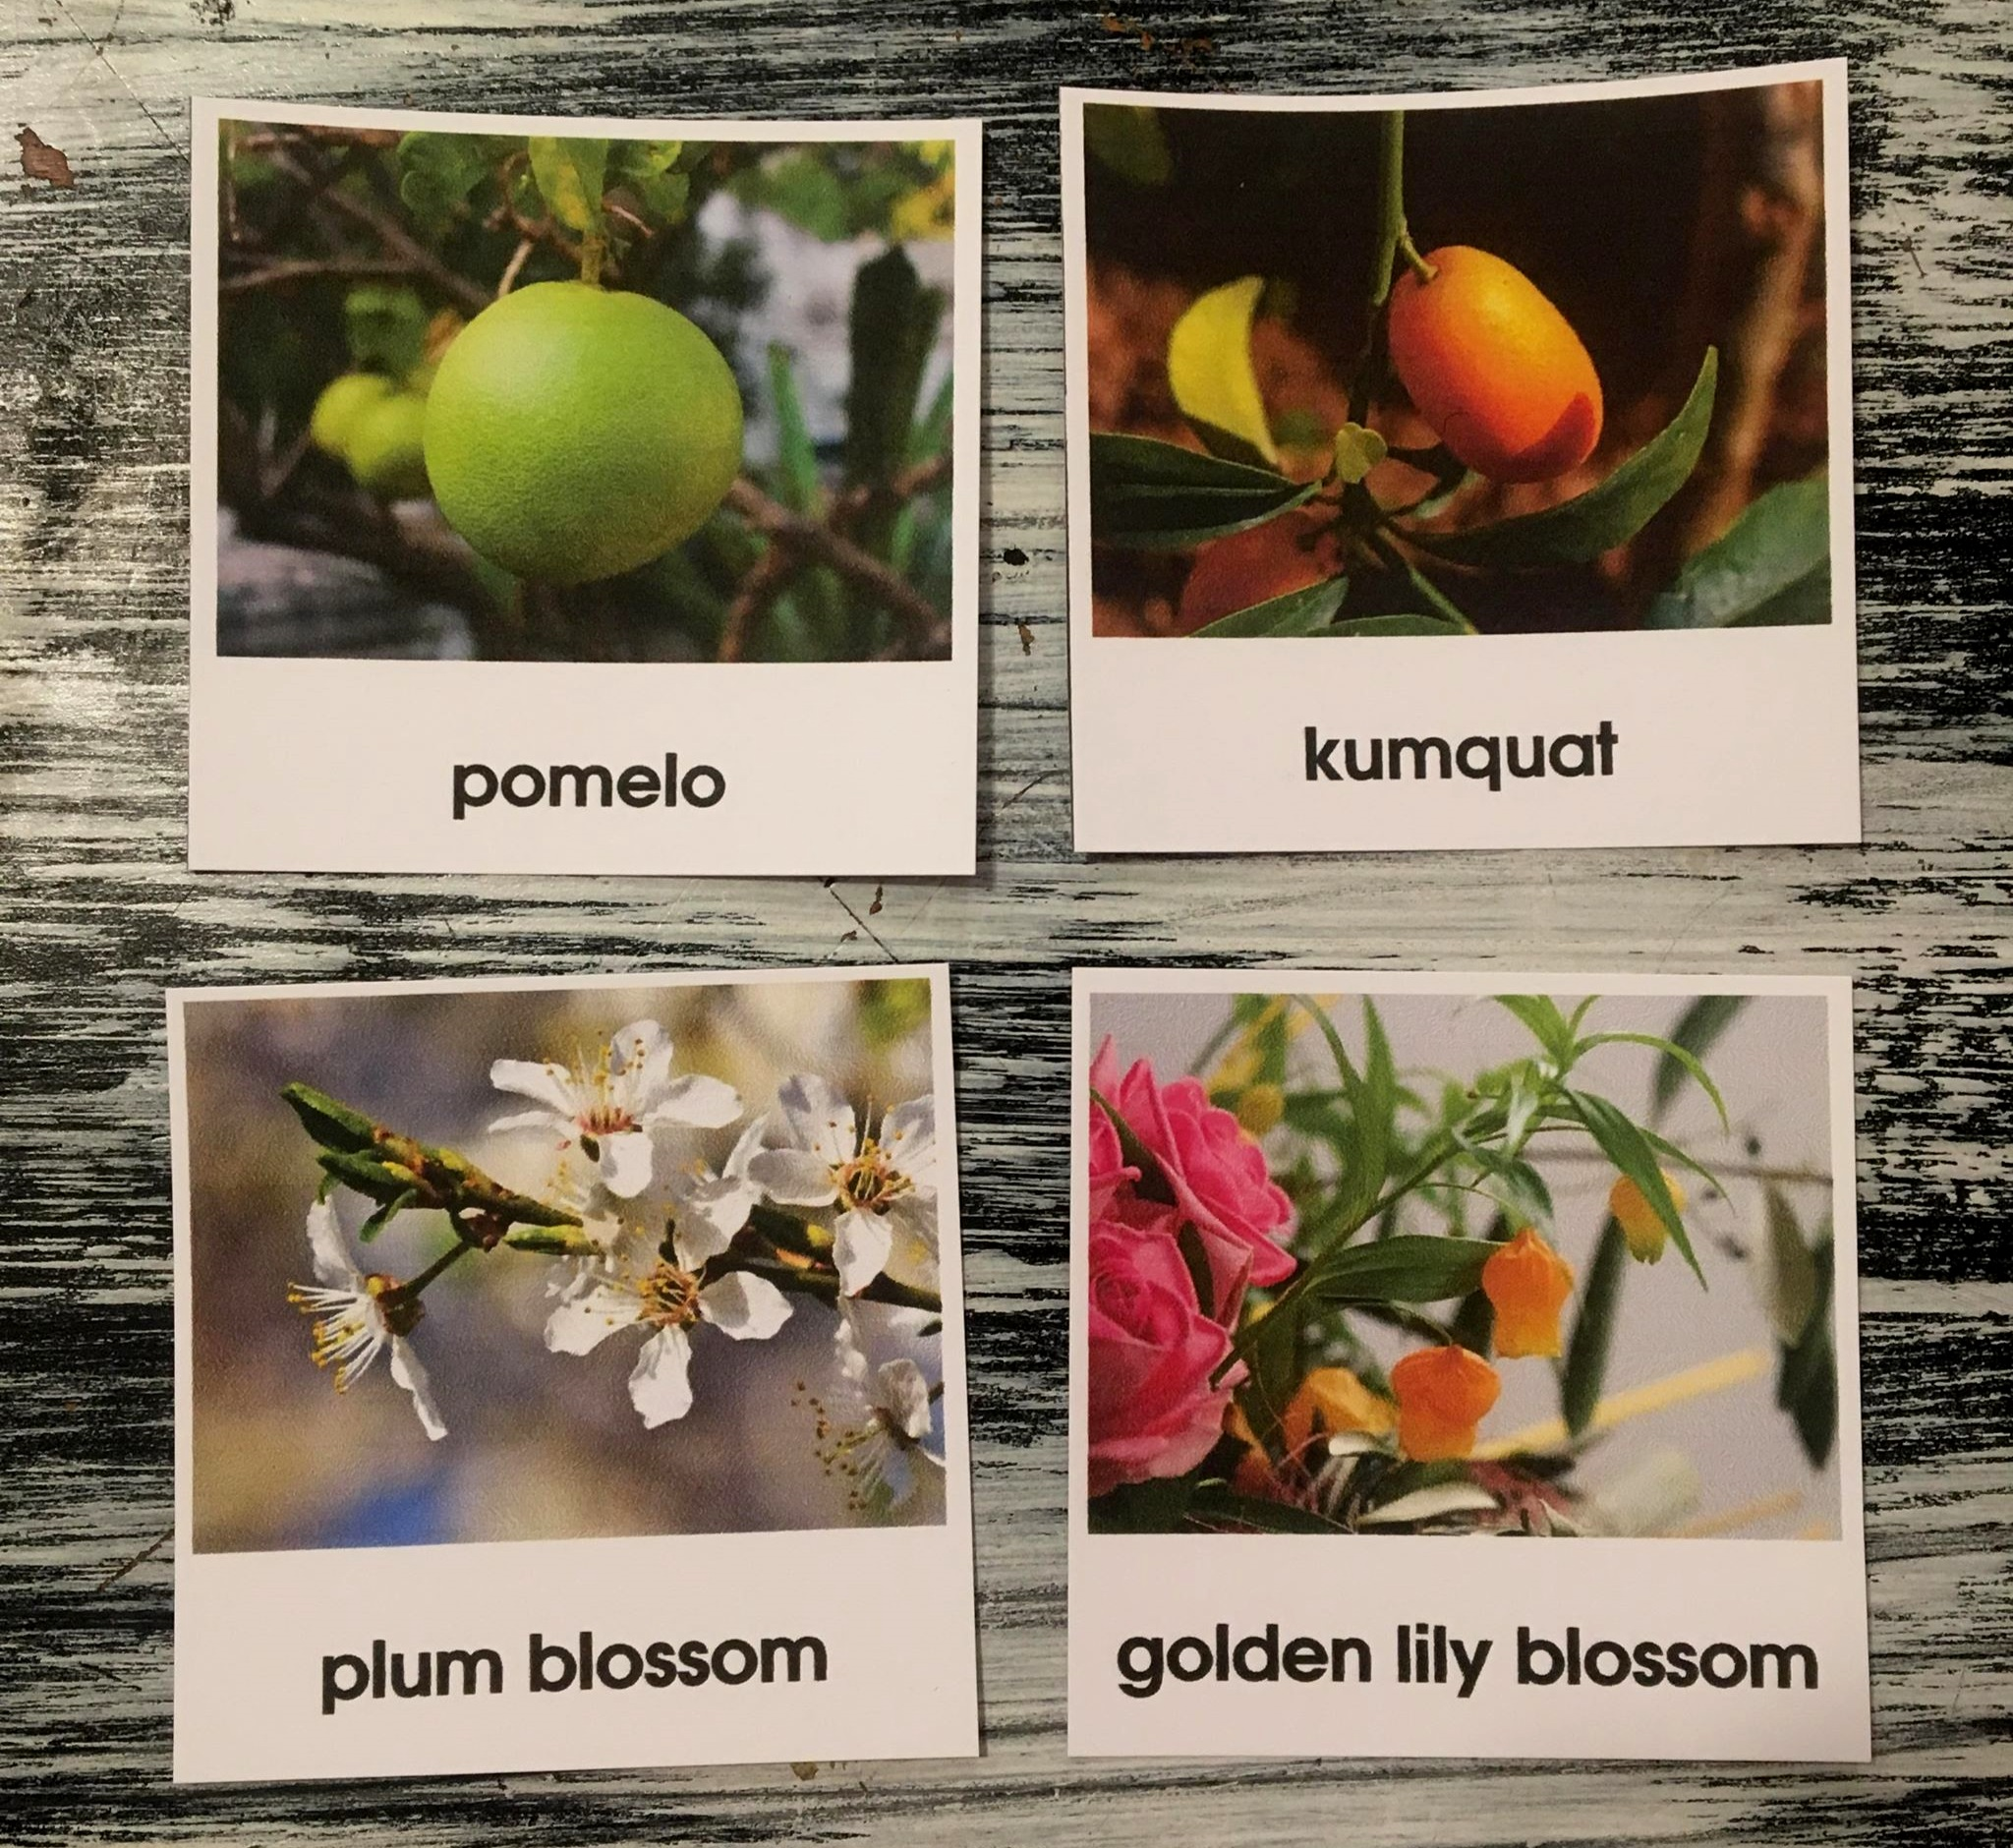 I love that there are so many cards that could really be used anytime. While all of the fruits and blossoms have significance at NY in particular, you could just have them for units on plants, food, China, etc., any time of year.